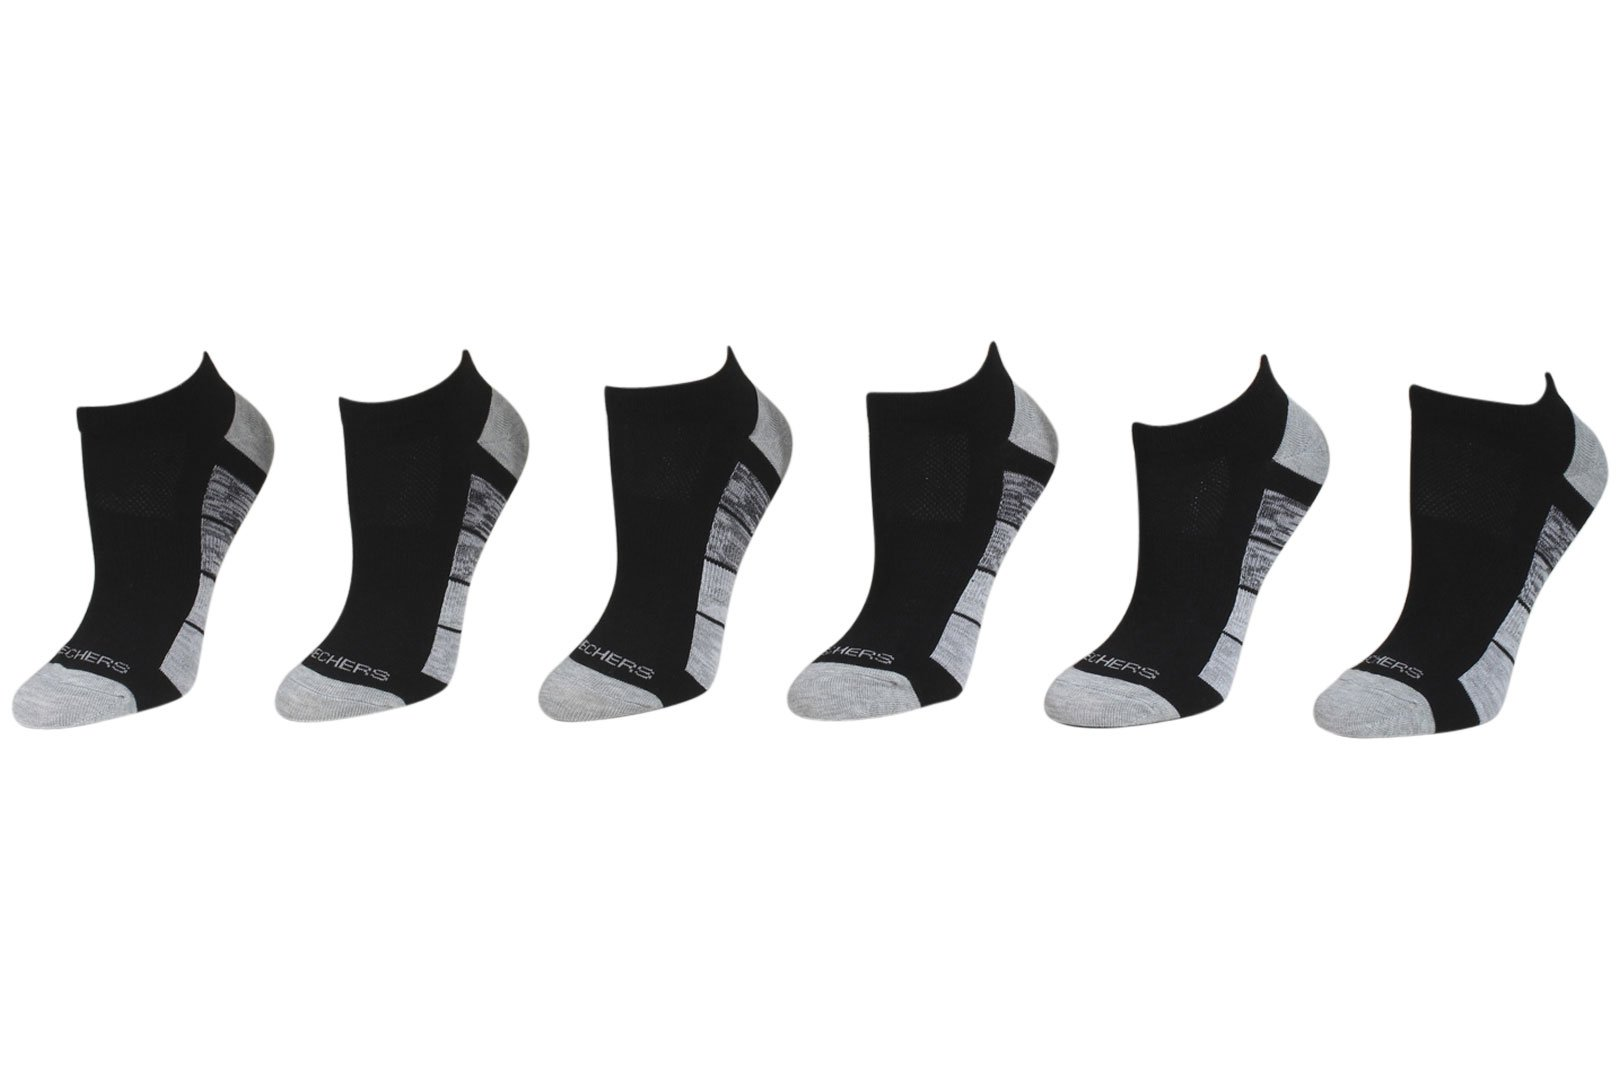 Skechers Active 6-Pairs Black/Gray Arch Support Low Cut Socks Sz 9-11 Fits 5-9.5